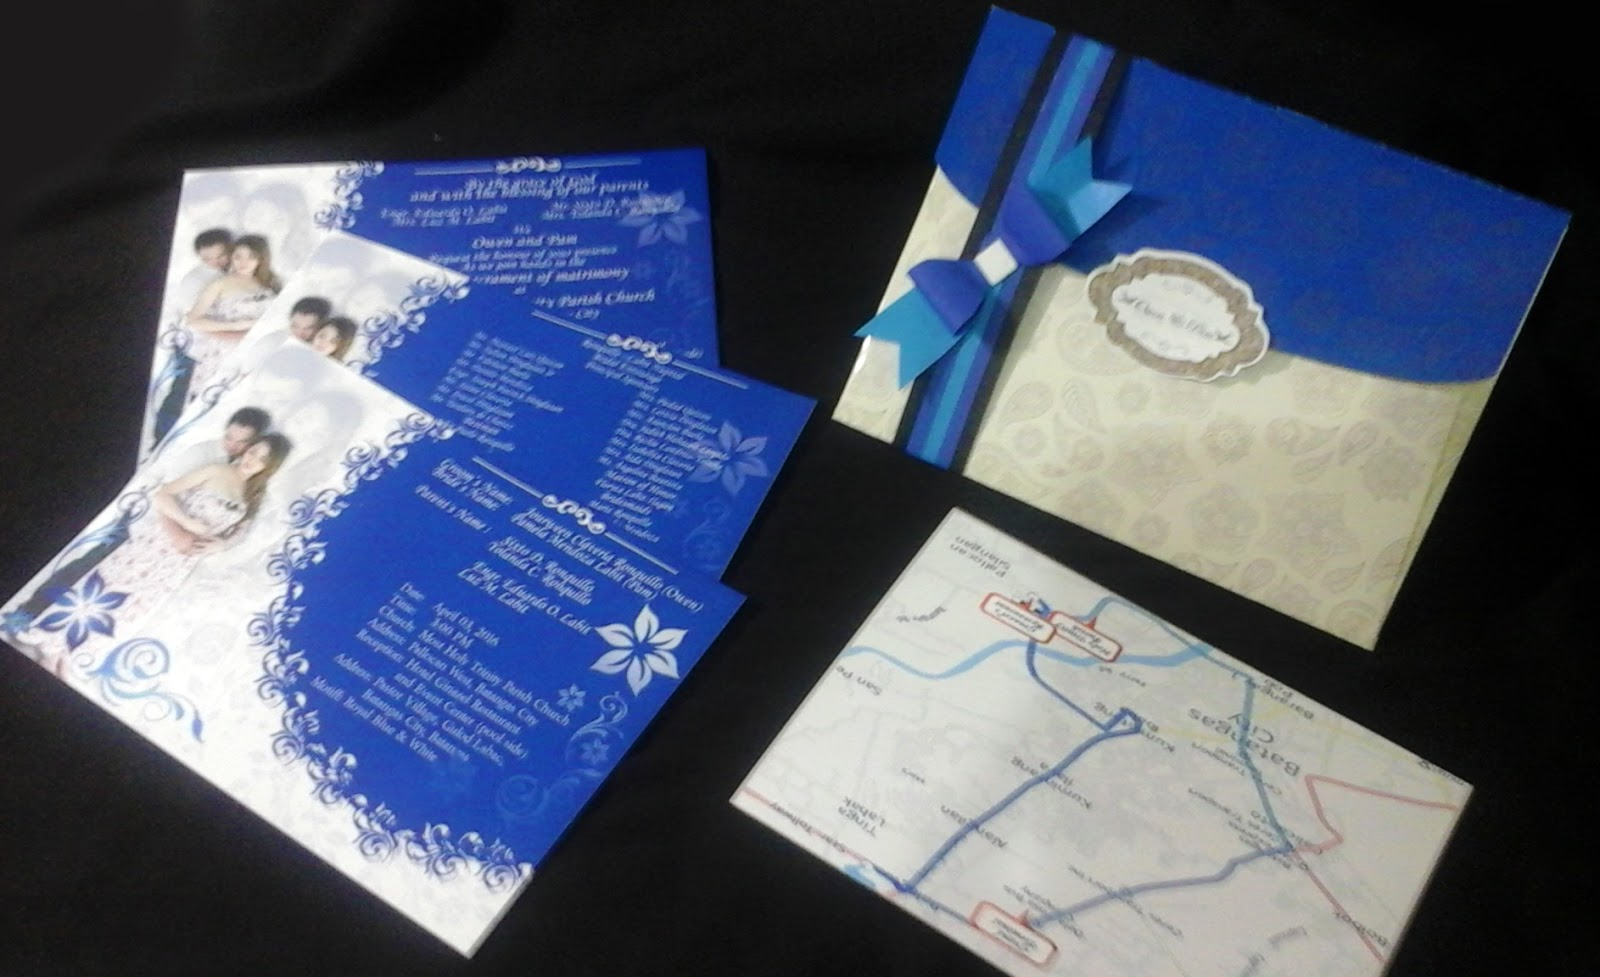 cheap wedding invitations with ribbon custom wedding invitation printing ideas cheap custom wedding invitations stain art designs and prints affordable wedding invitation custom cheap blue